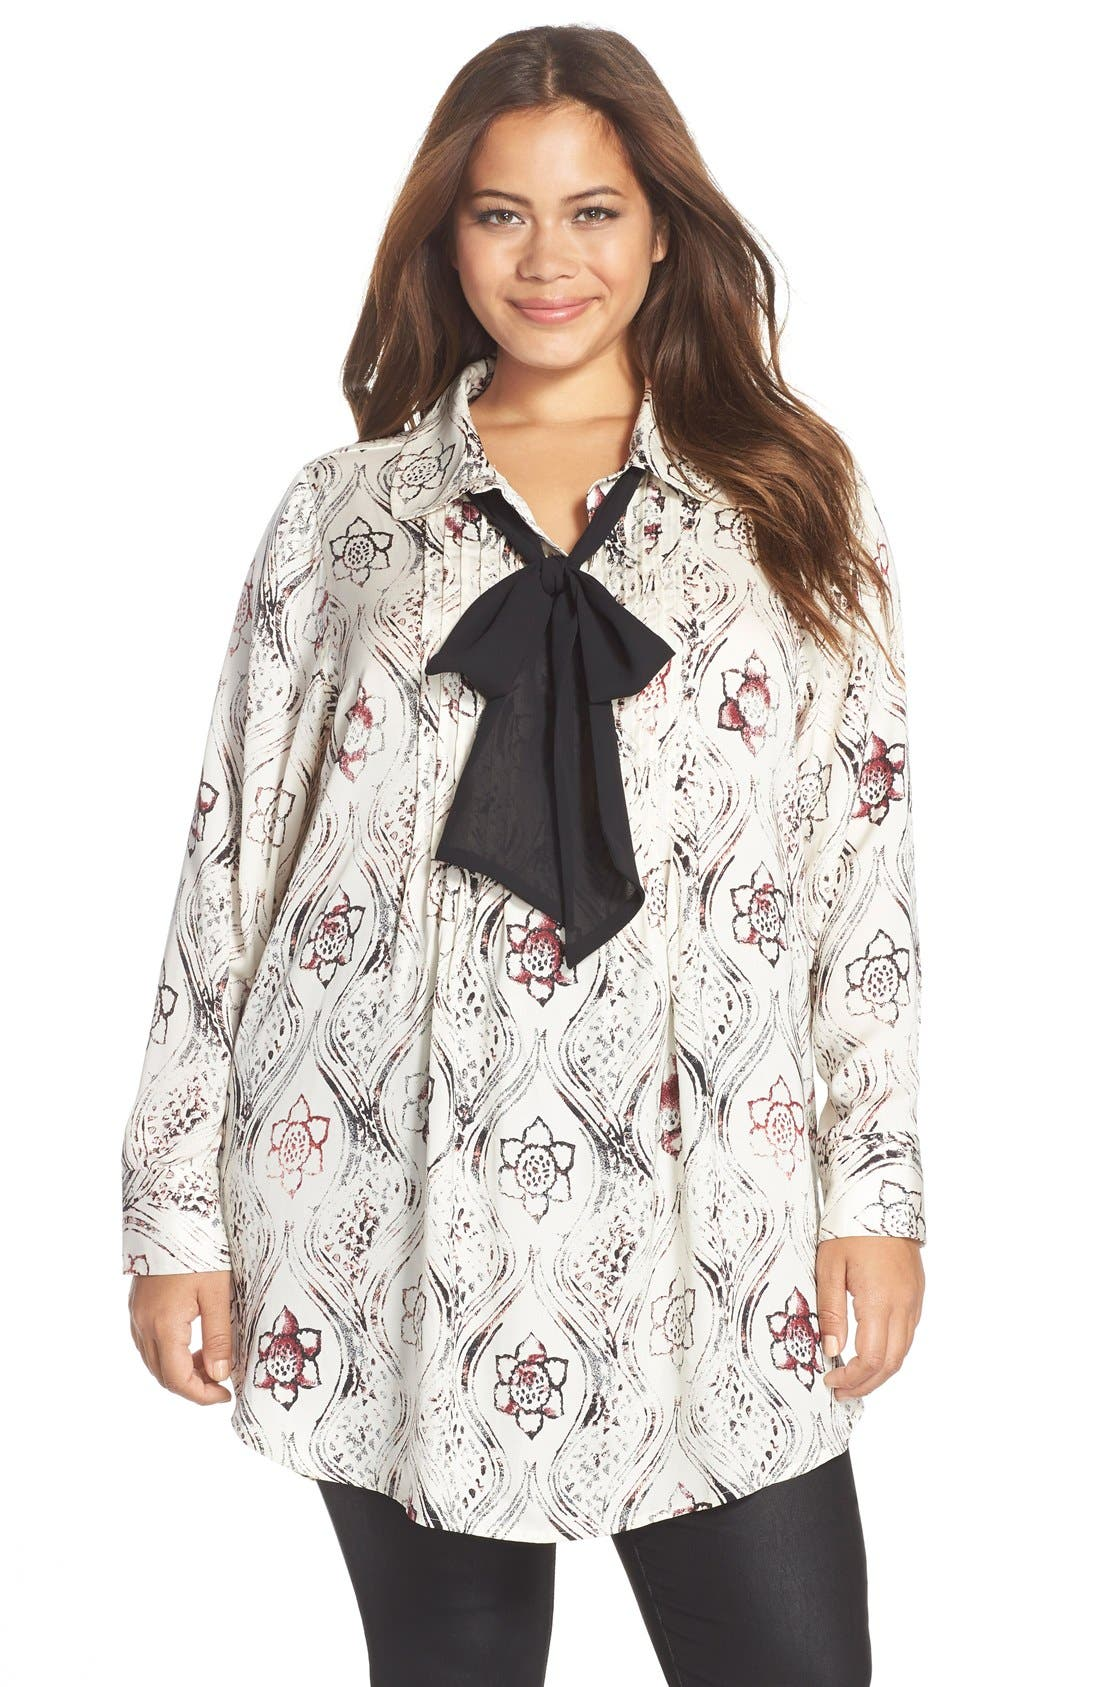 Alternate Image 1 Selected - Melissa McCarthy Seven7 Print Scarf Neck Blouse (Plus Size)